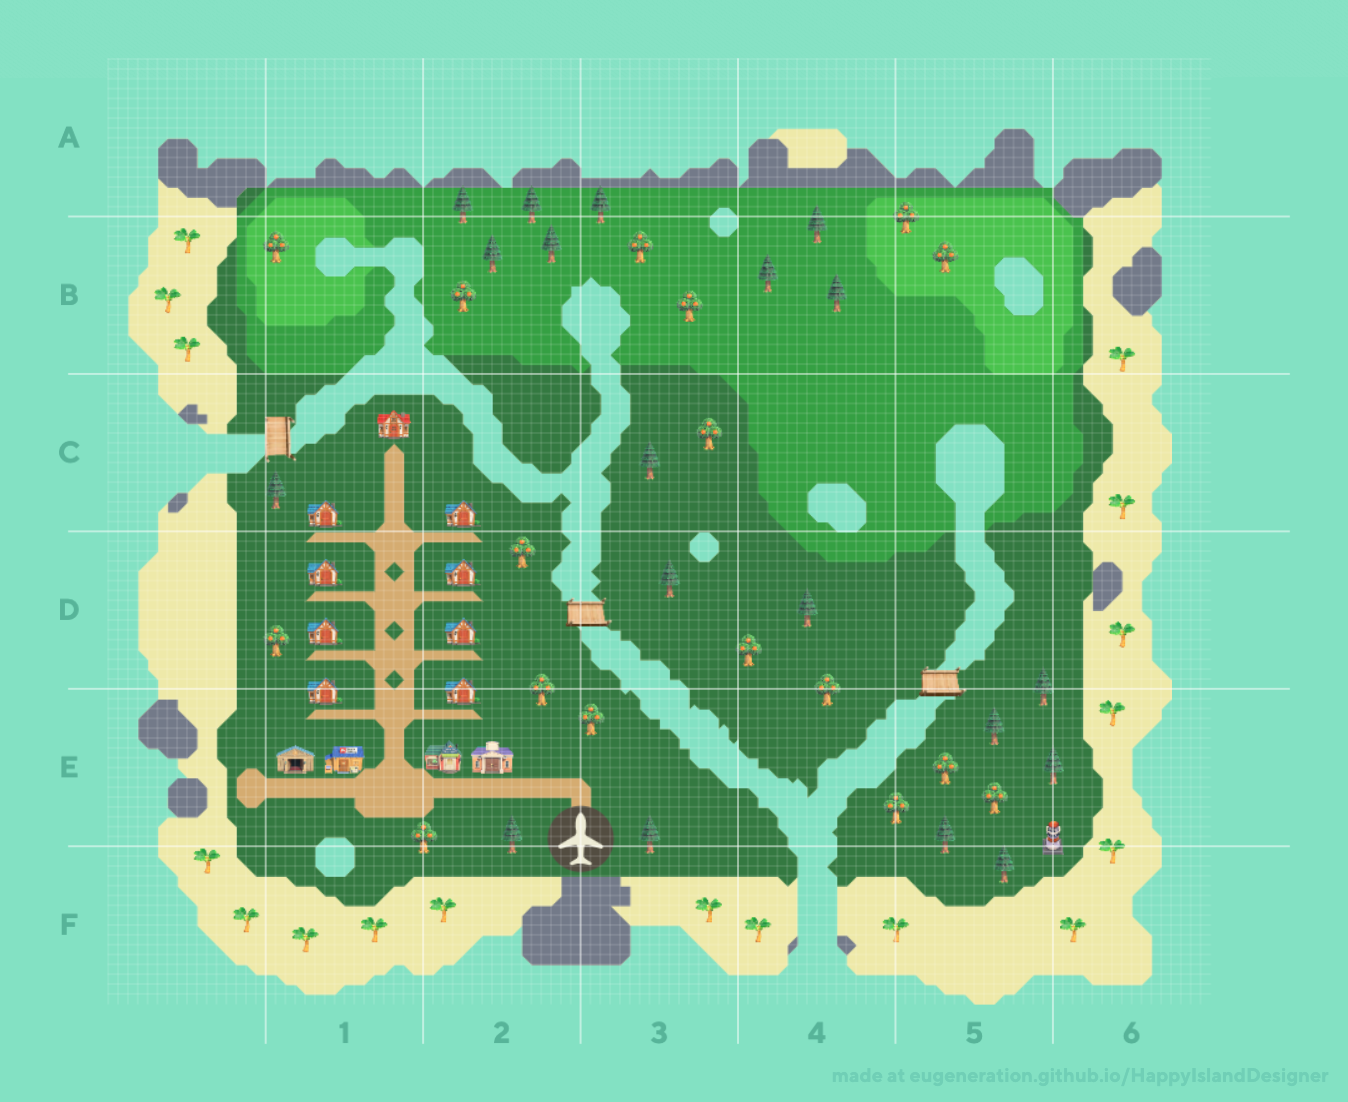 A Screenshot of Jake's Island on Happy Island Designer